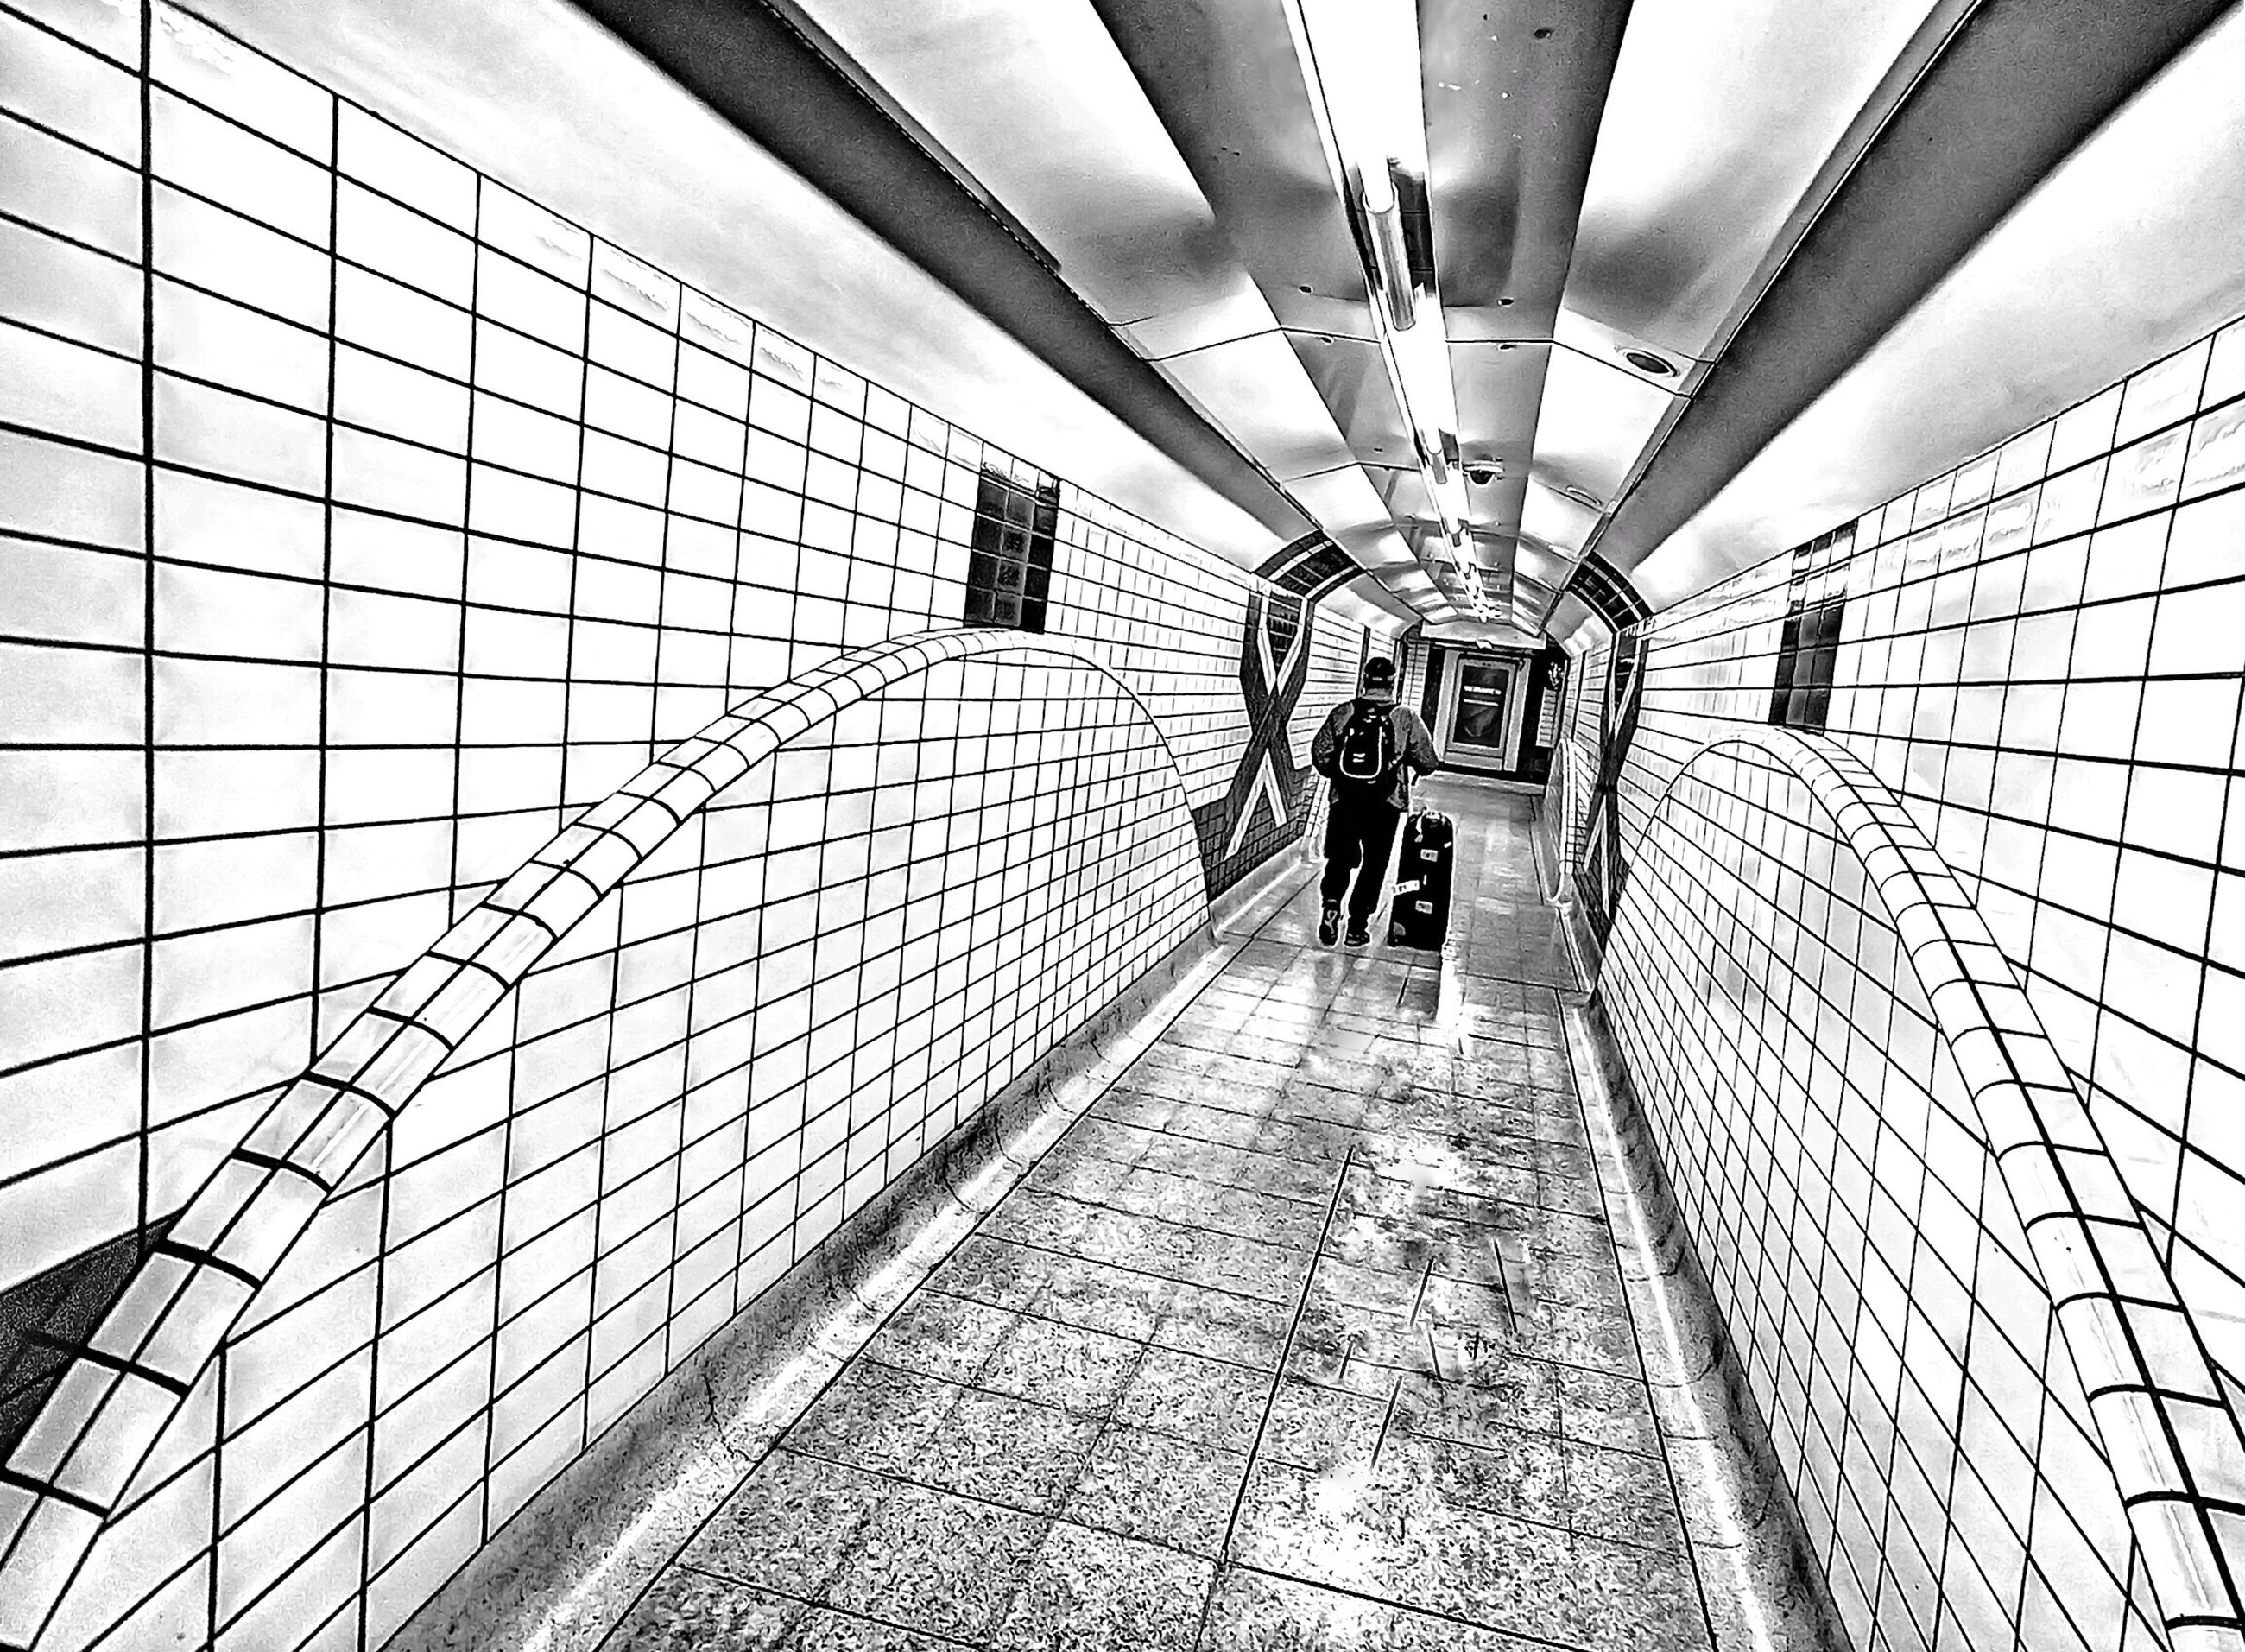 indoors, ceiling, architecture, built structure, the way forward, walking, men, diminishing perspective, lifestyles, modern, tiled floor, transportation, pattern, subway, incidental people, person, flooring, tunnel